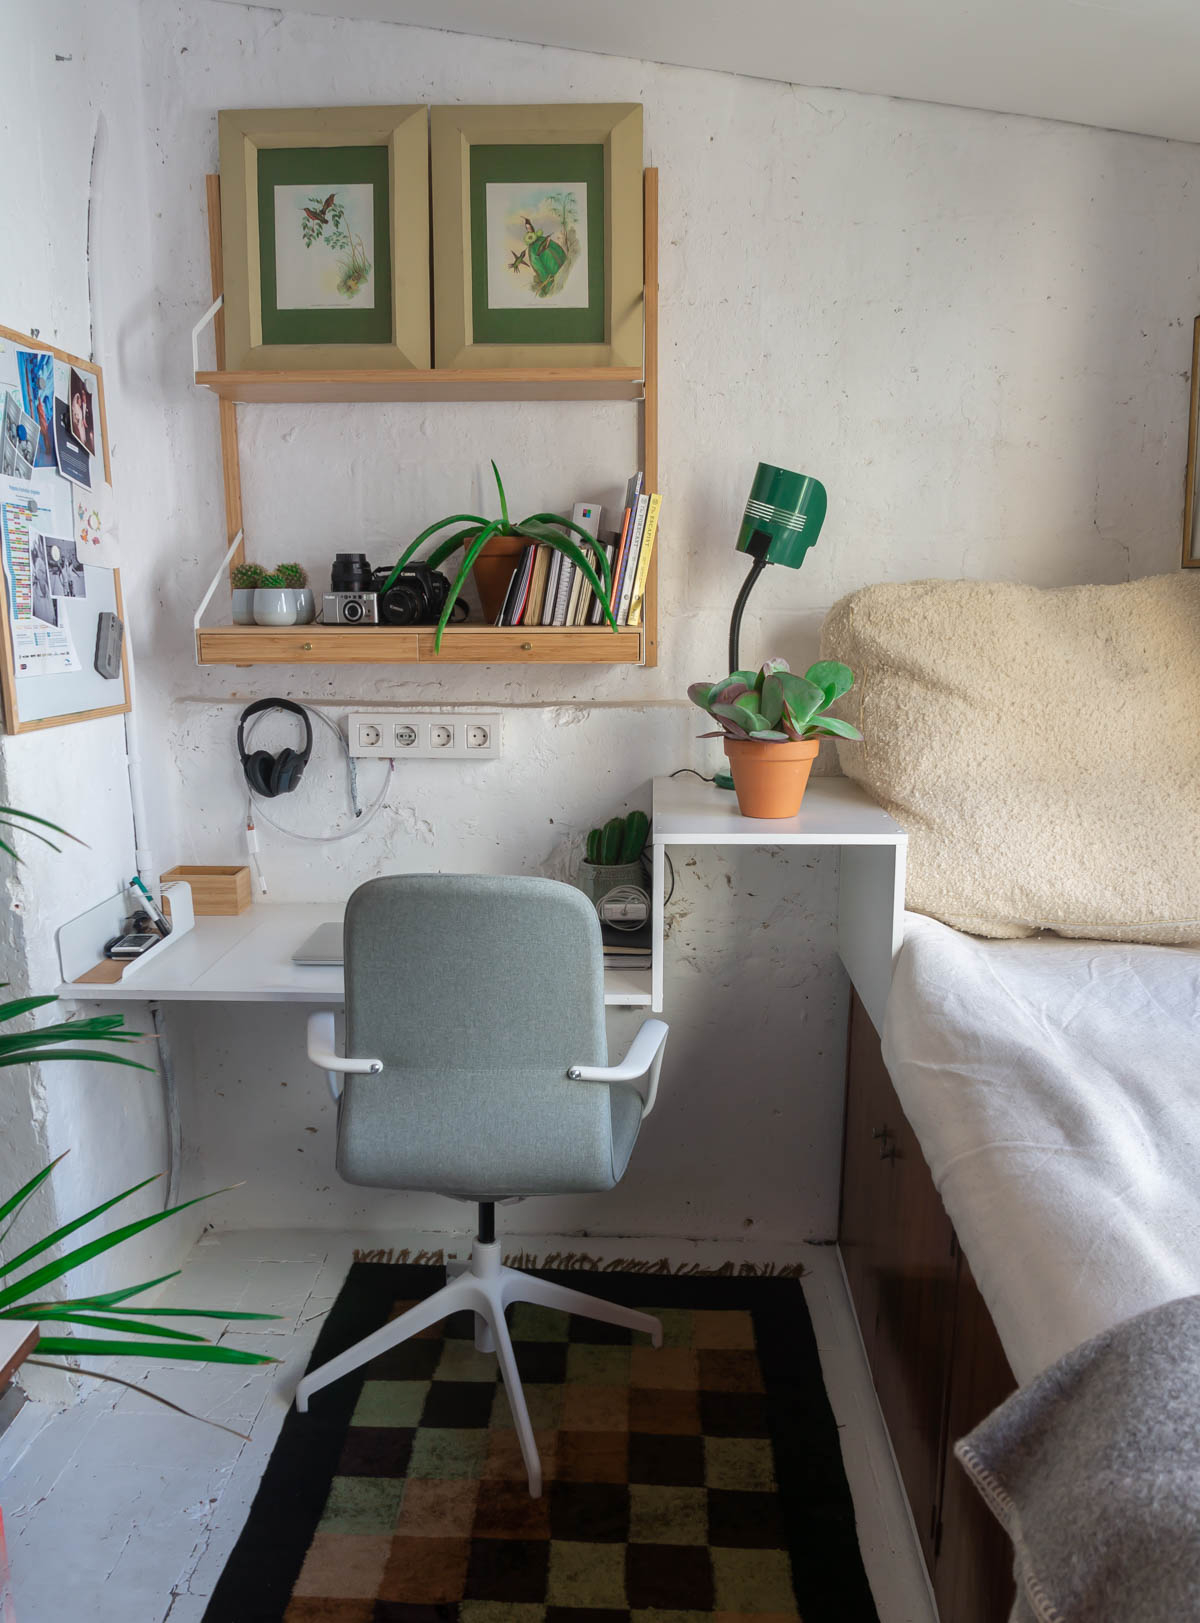 Barcelona home tour: storeroom turned into a study with a daybed